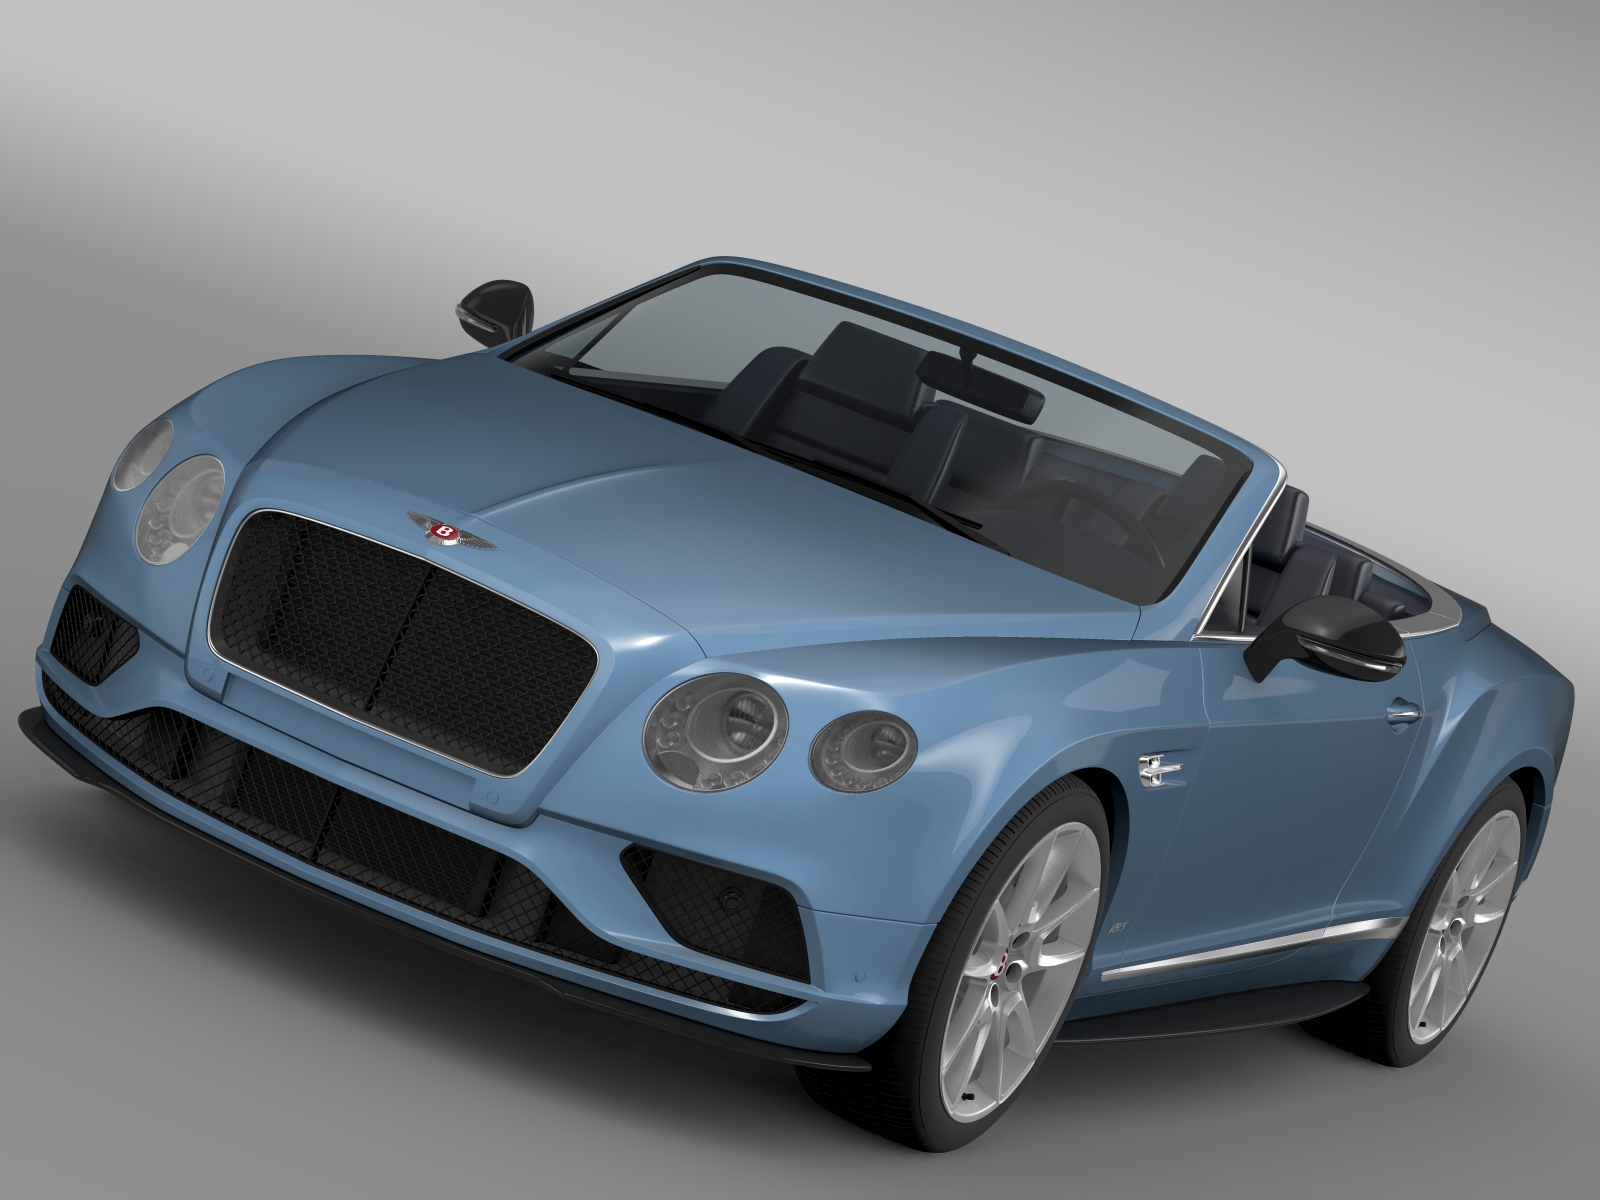 bentley continental gt v8 s convertible 2015 3d model 3ds max fbx c4d lwo ma mb hrc xsi obj 211210